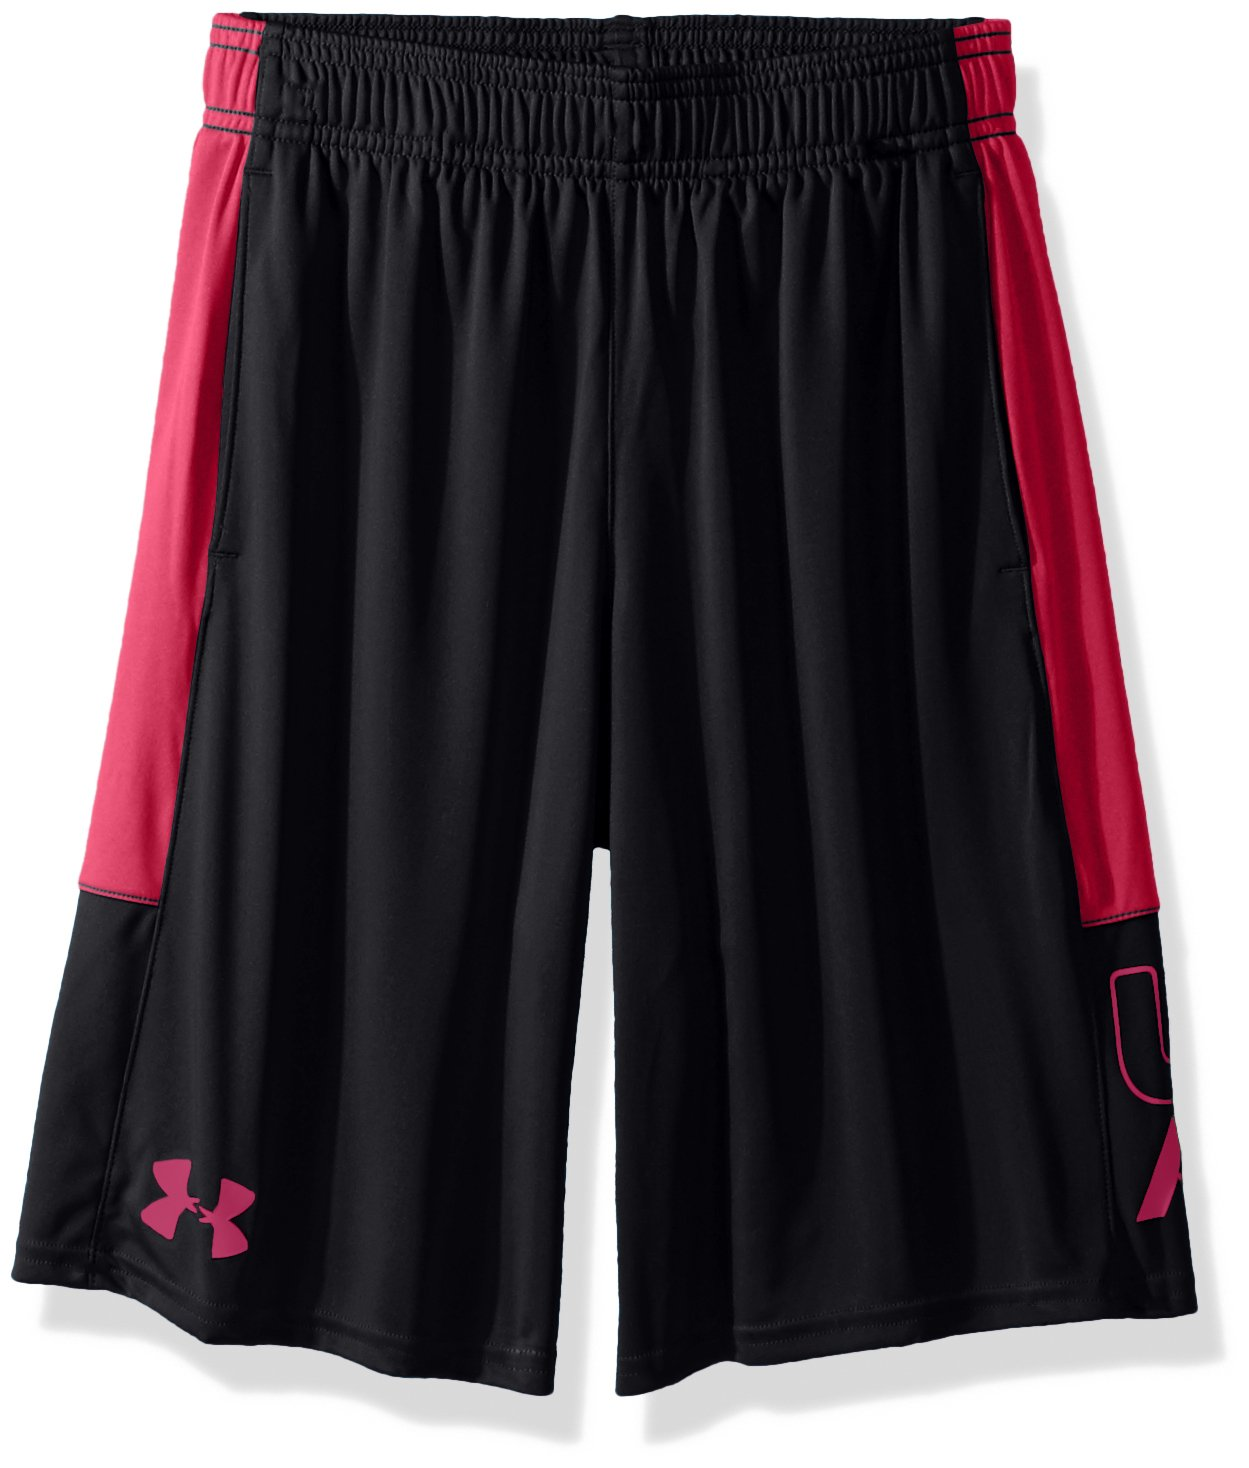 Under Armour Boys Instinct Shorts,Black /Tropic Pink Youth X-Small